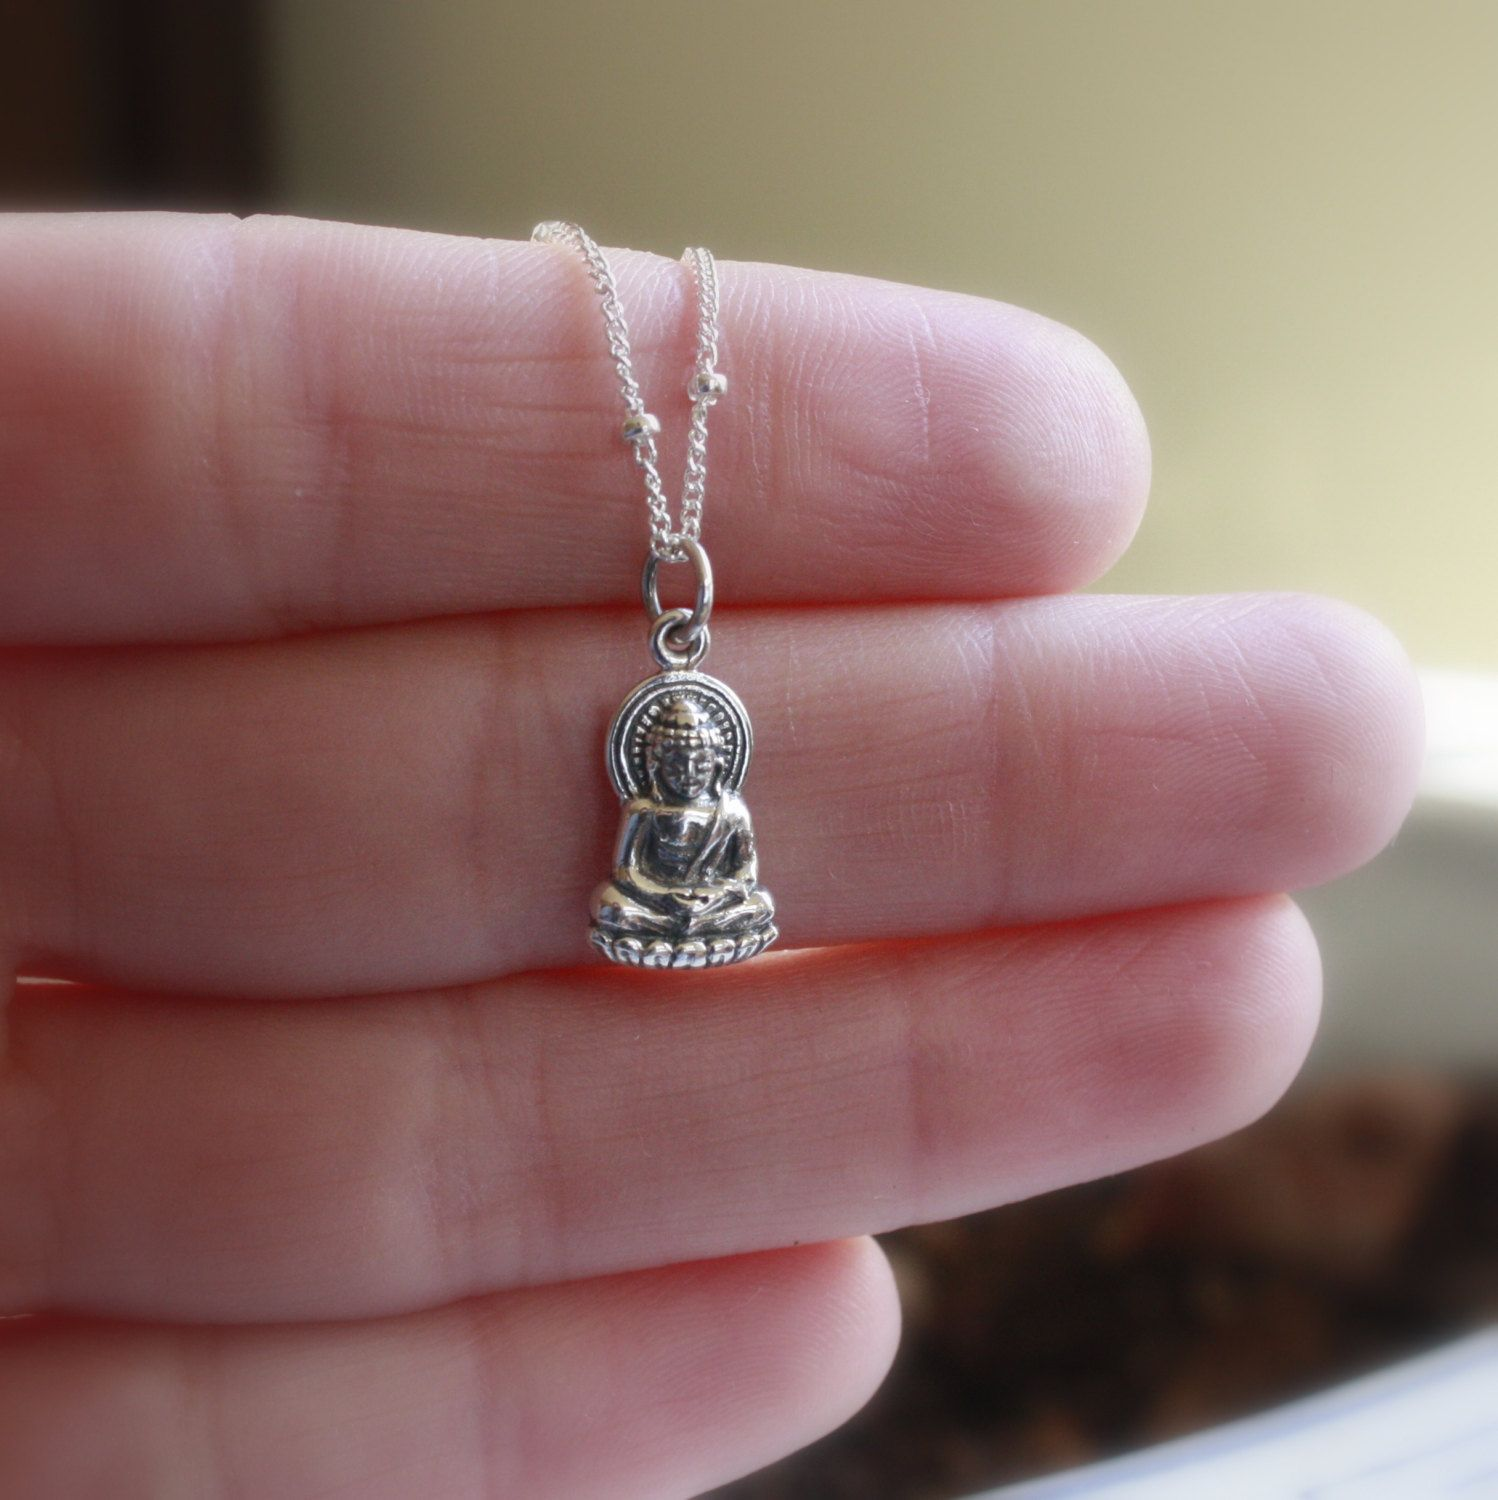 Silver buddha necklace sterling silver buddha pendant yoga silver buddha necklace sterling silver buddha pendant yoga jewelry buddhism spirituality aloadofball Images